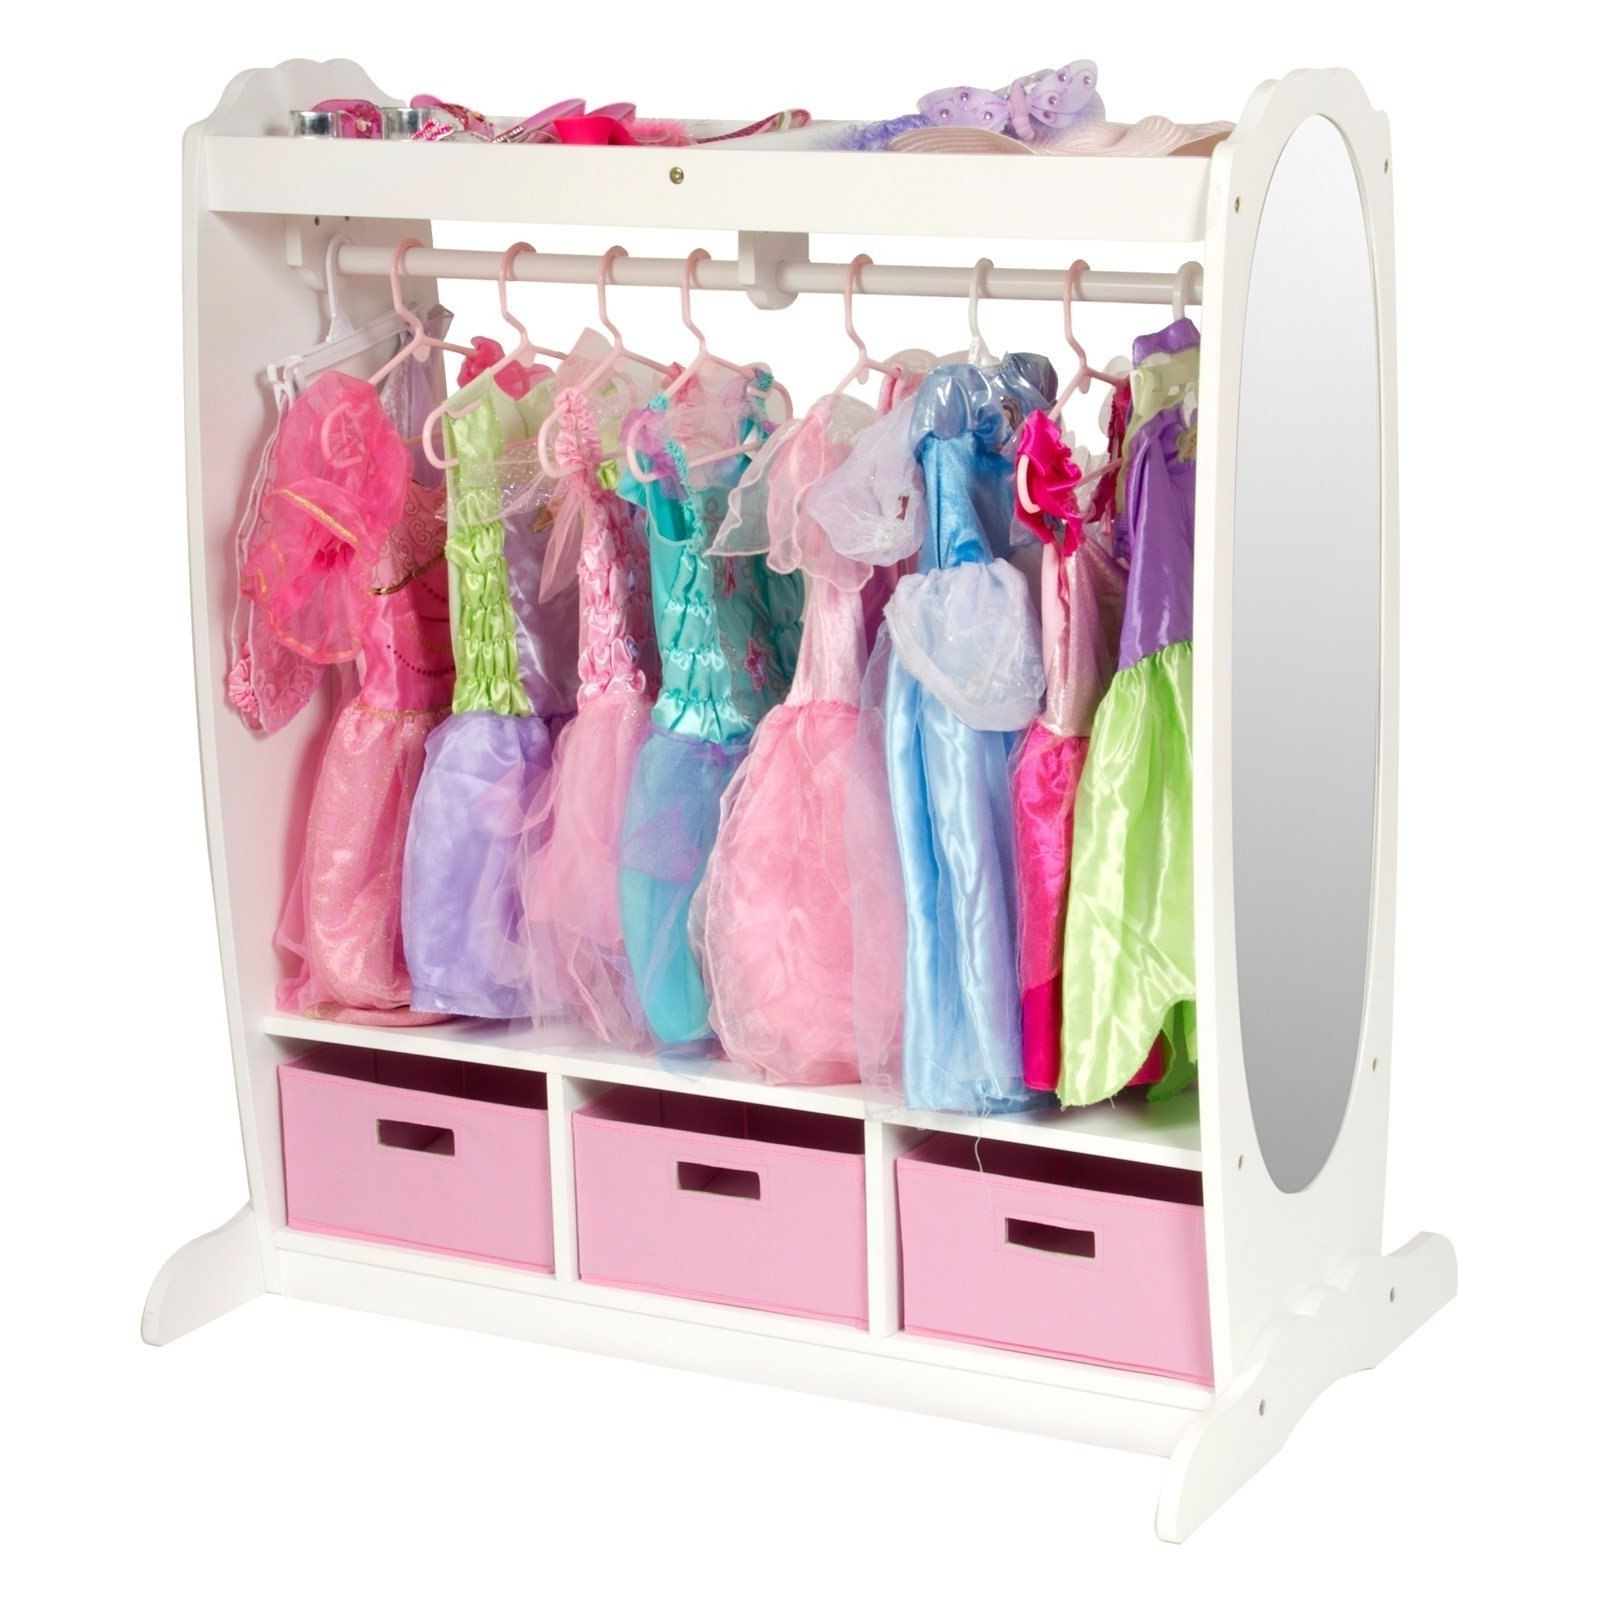 Wardrobe Kits 15 Best Collection Of Kids Dress Up Wardrobes Closet